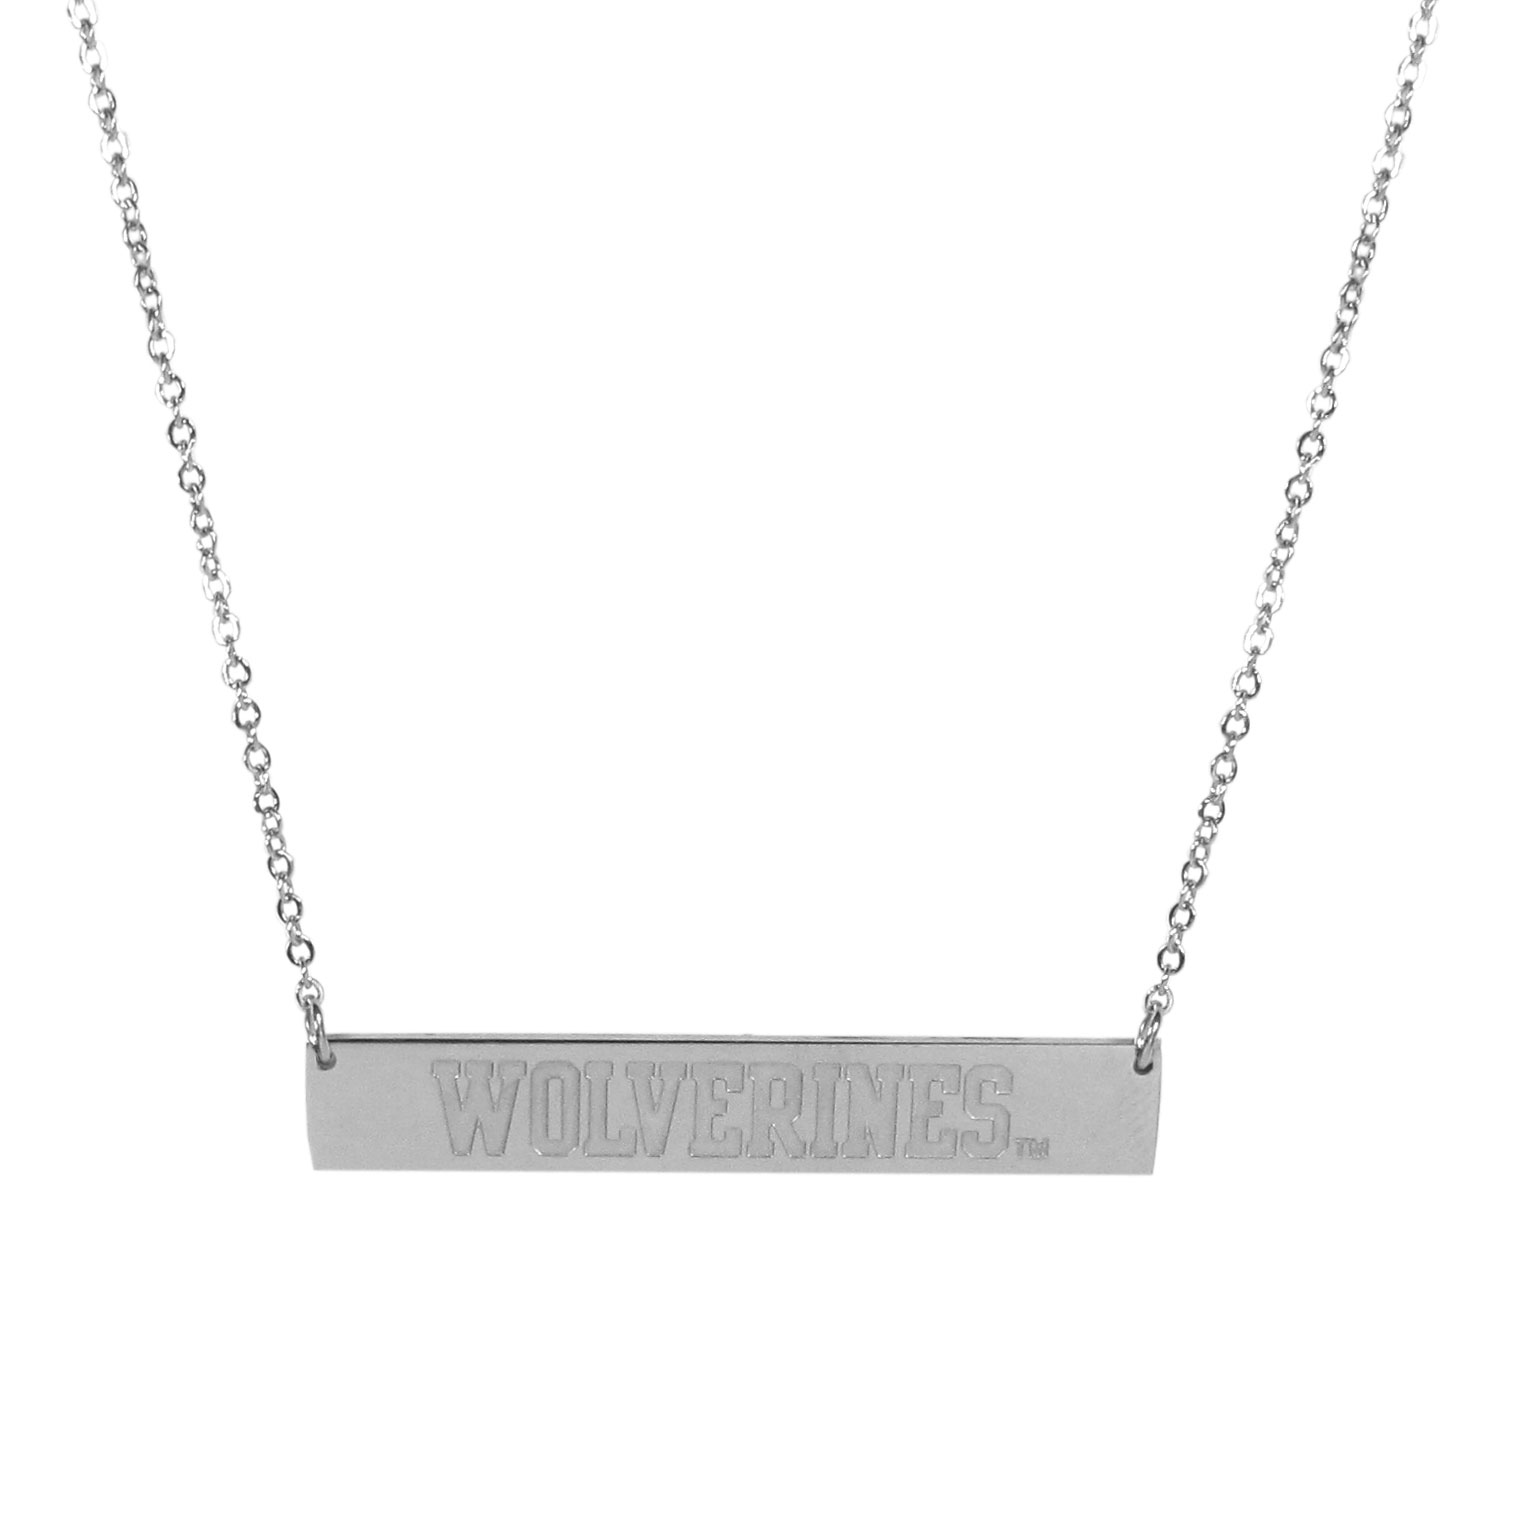 Michigan Wolverines Bar Necklace - Simply beautiful Michigan Wolverines bar necklace on a 20 inch link chain with 2 inch adjustable extender. This light-weight bar necklace has a stylish silver colored finish with the team name expertly etched on the 1.5 inch bar. Every female  fan will enjoy this contempory fashion accessory.